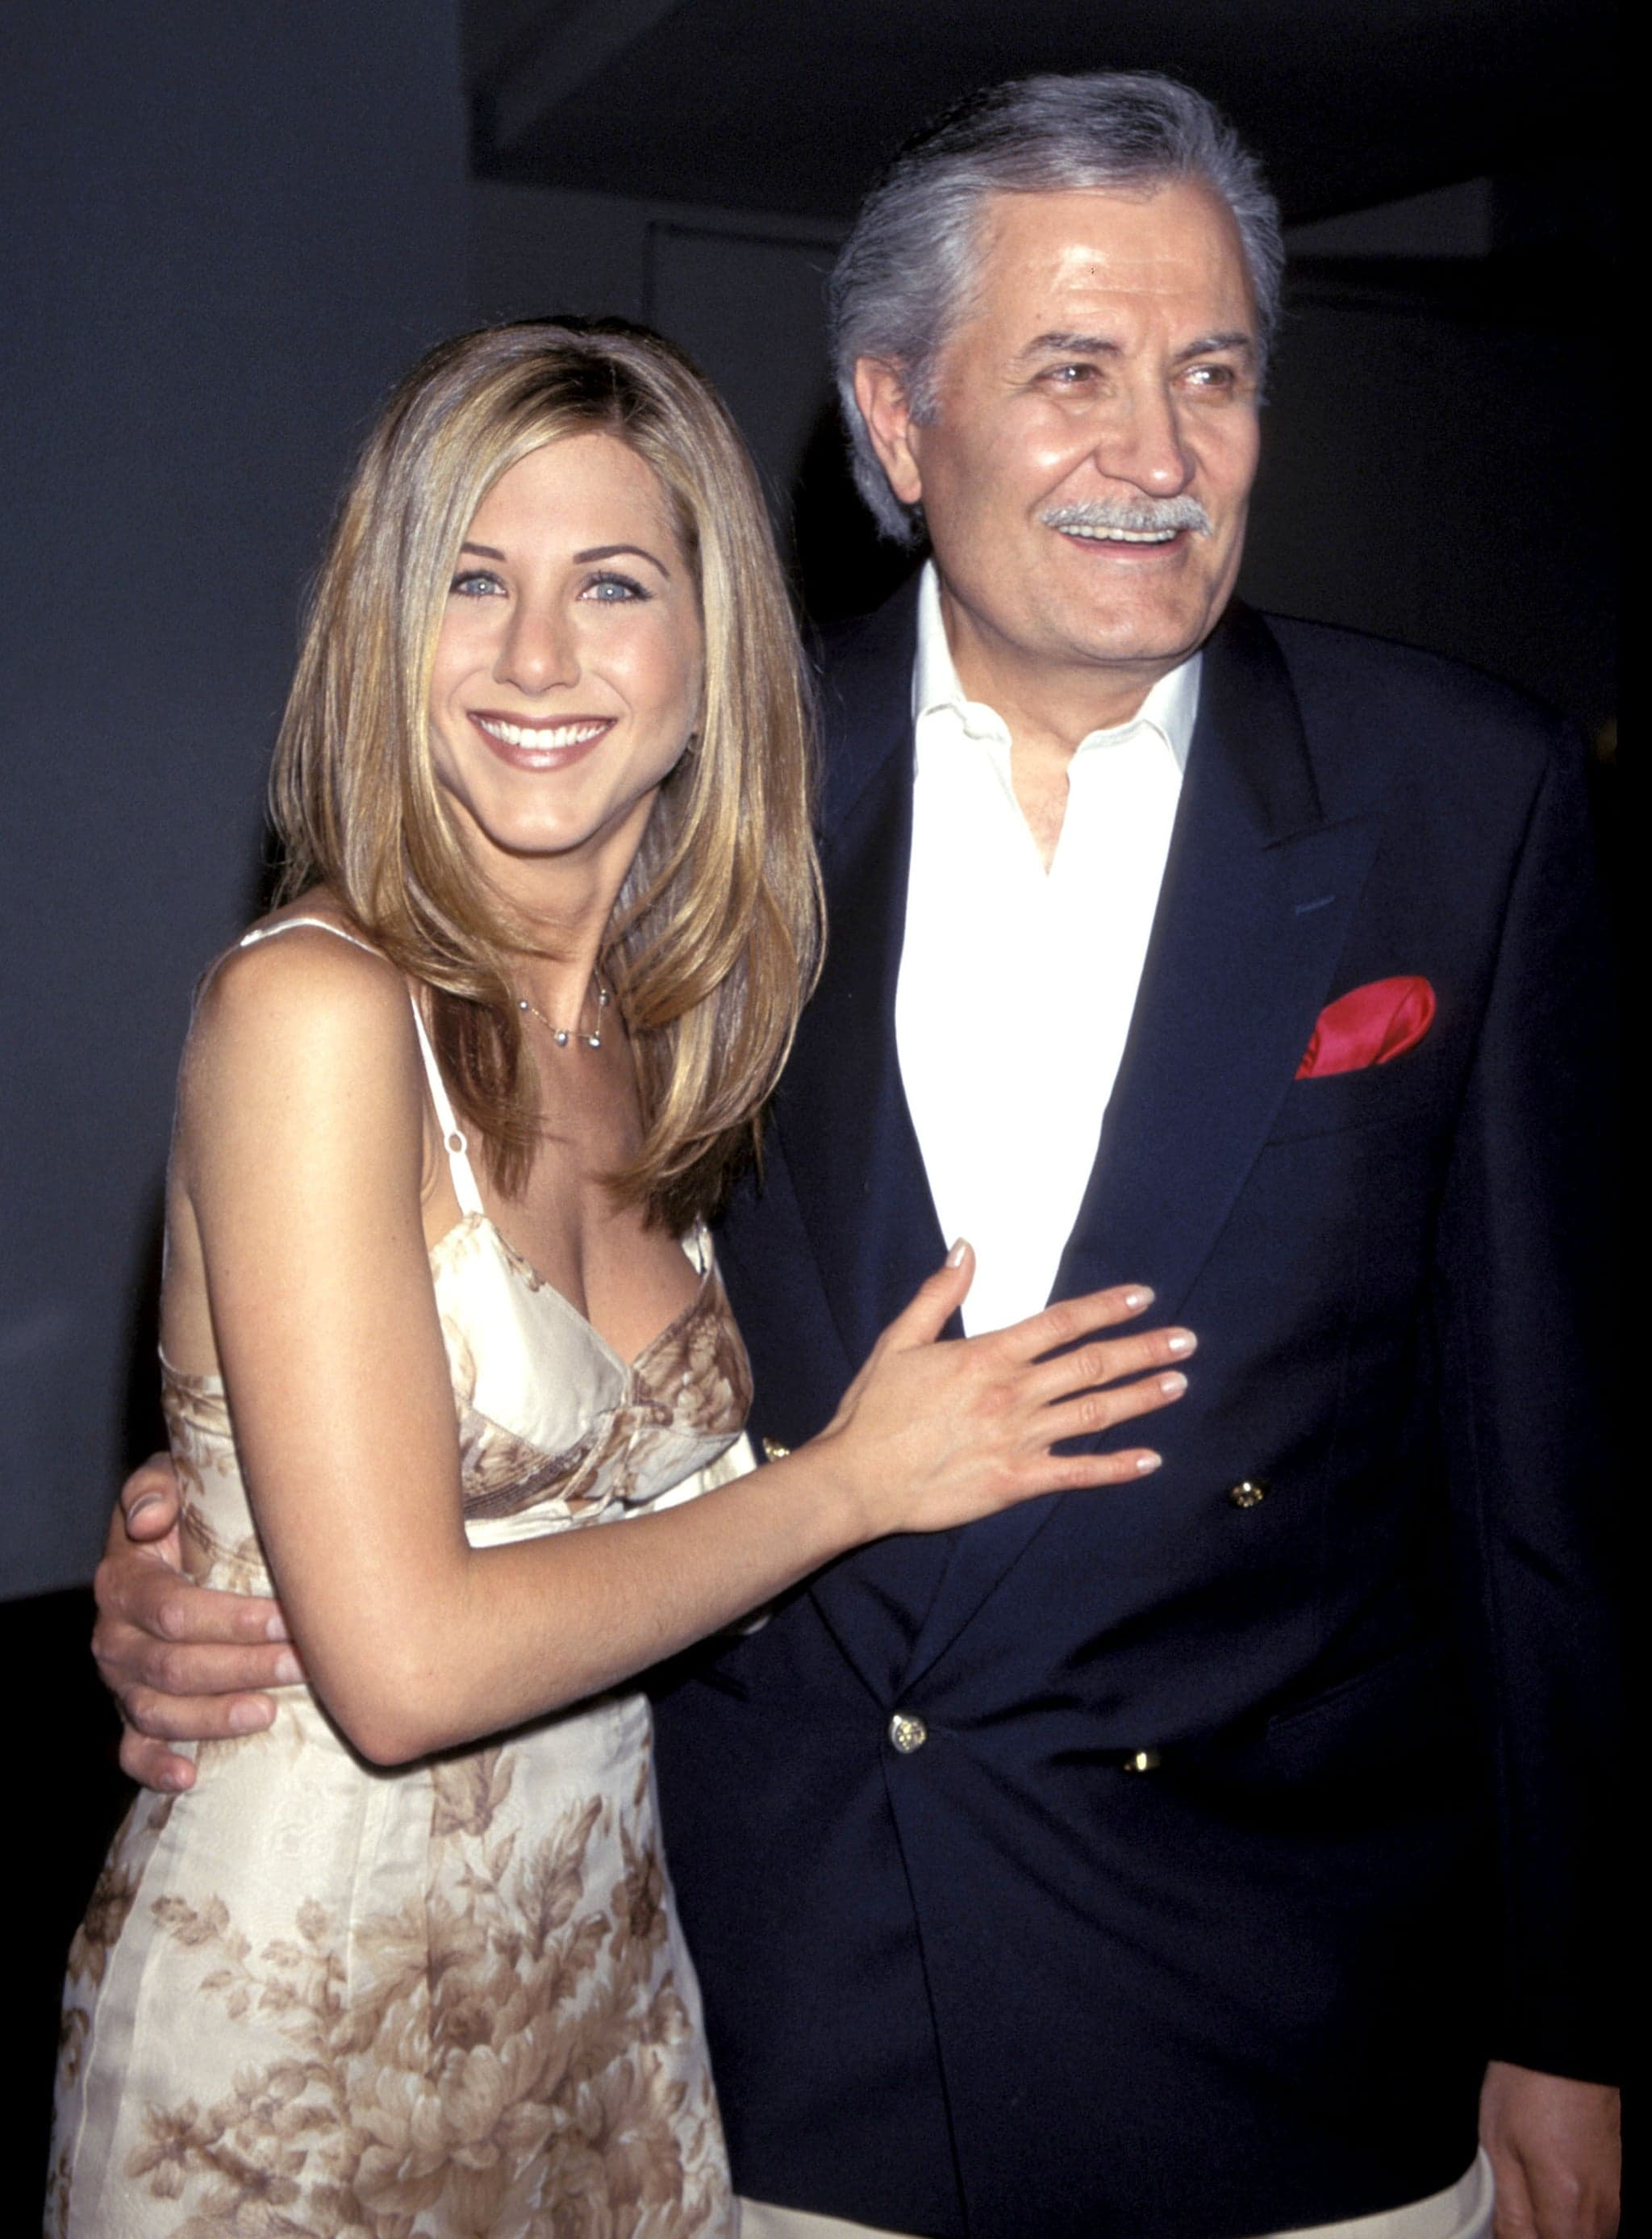 John Aniston HQ wallpapers